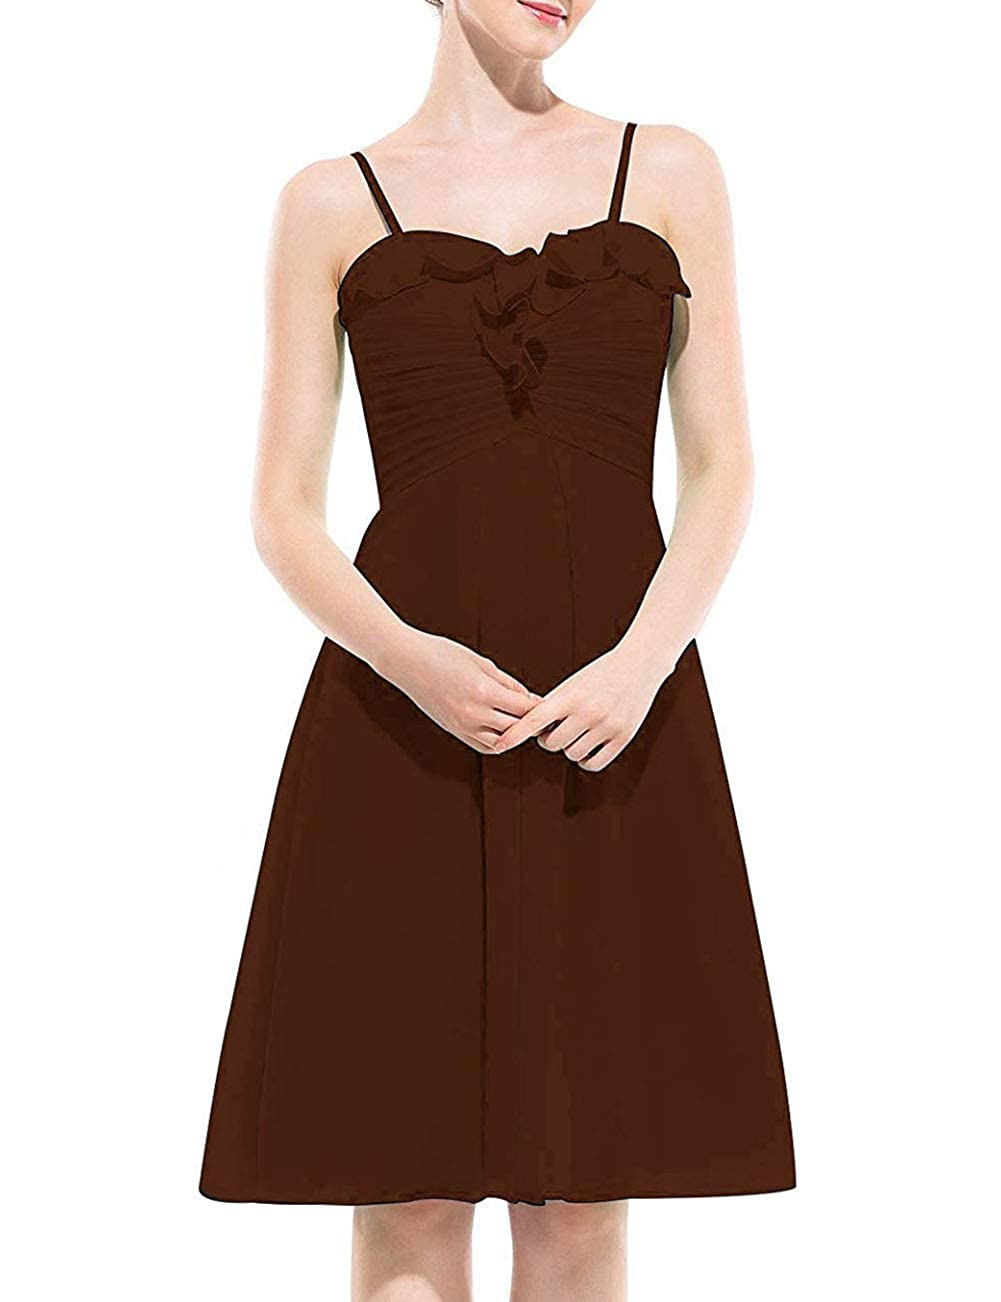 Chocolate Uther Spaghetti Strap Bridesmaid Dress Short Homecoming Party Cocktail Dresses